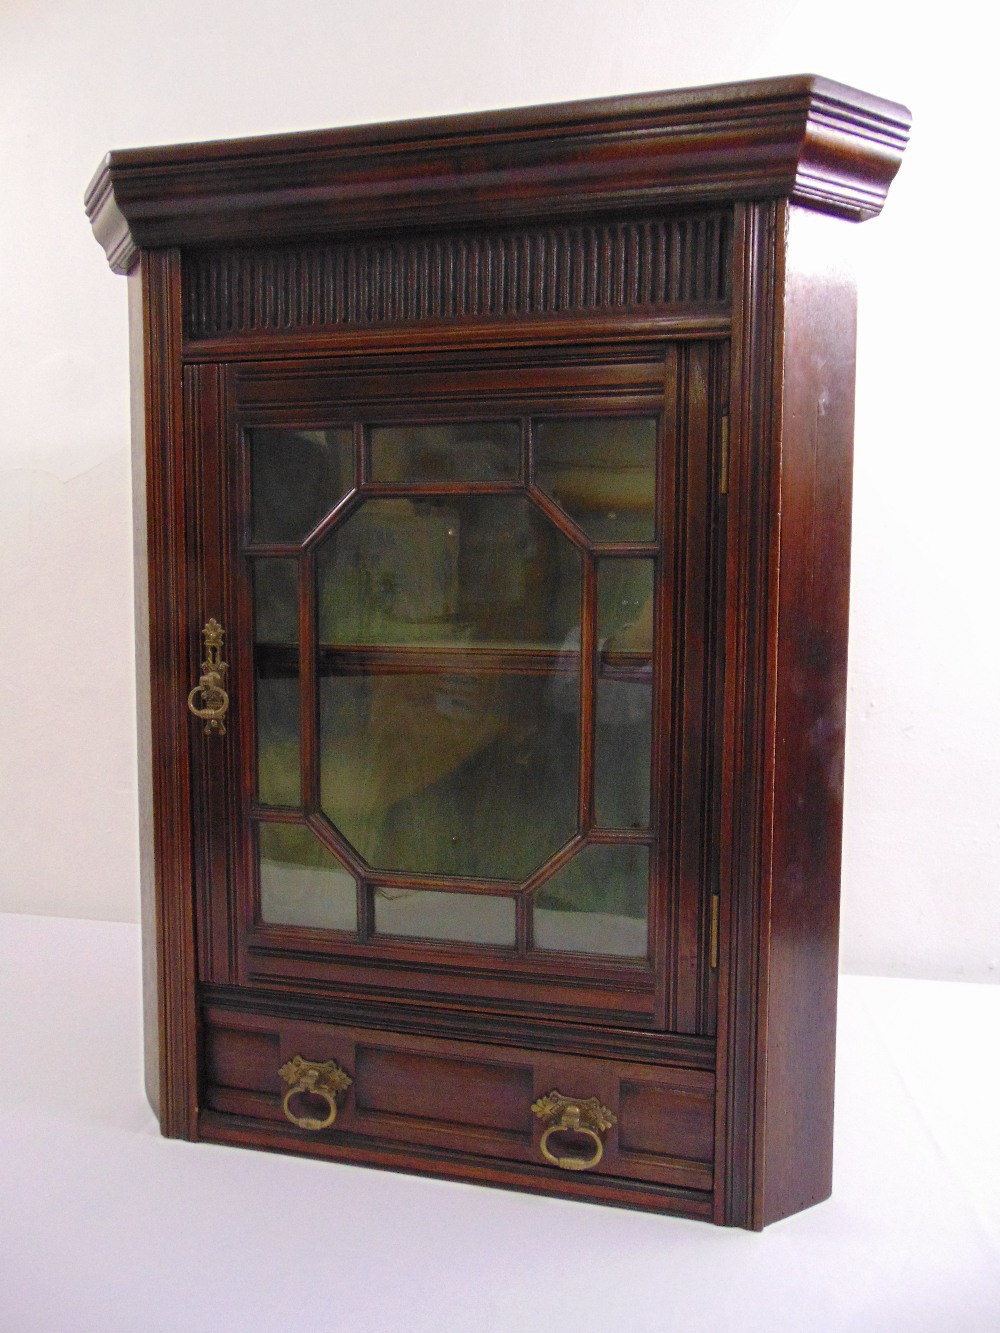 Lot 8 - An early 20th century rectangular mahogany glazed wall hanging corner cabinet